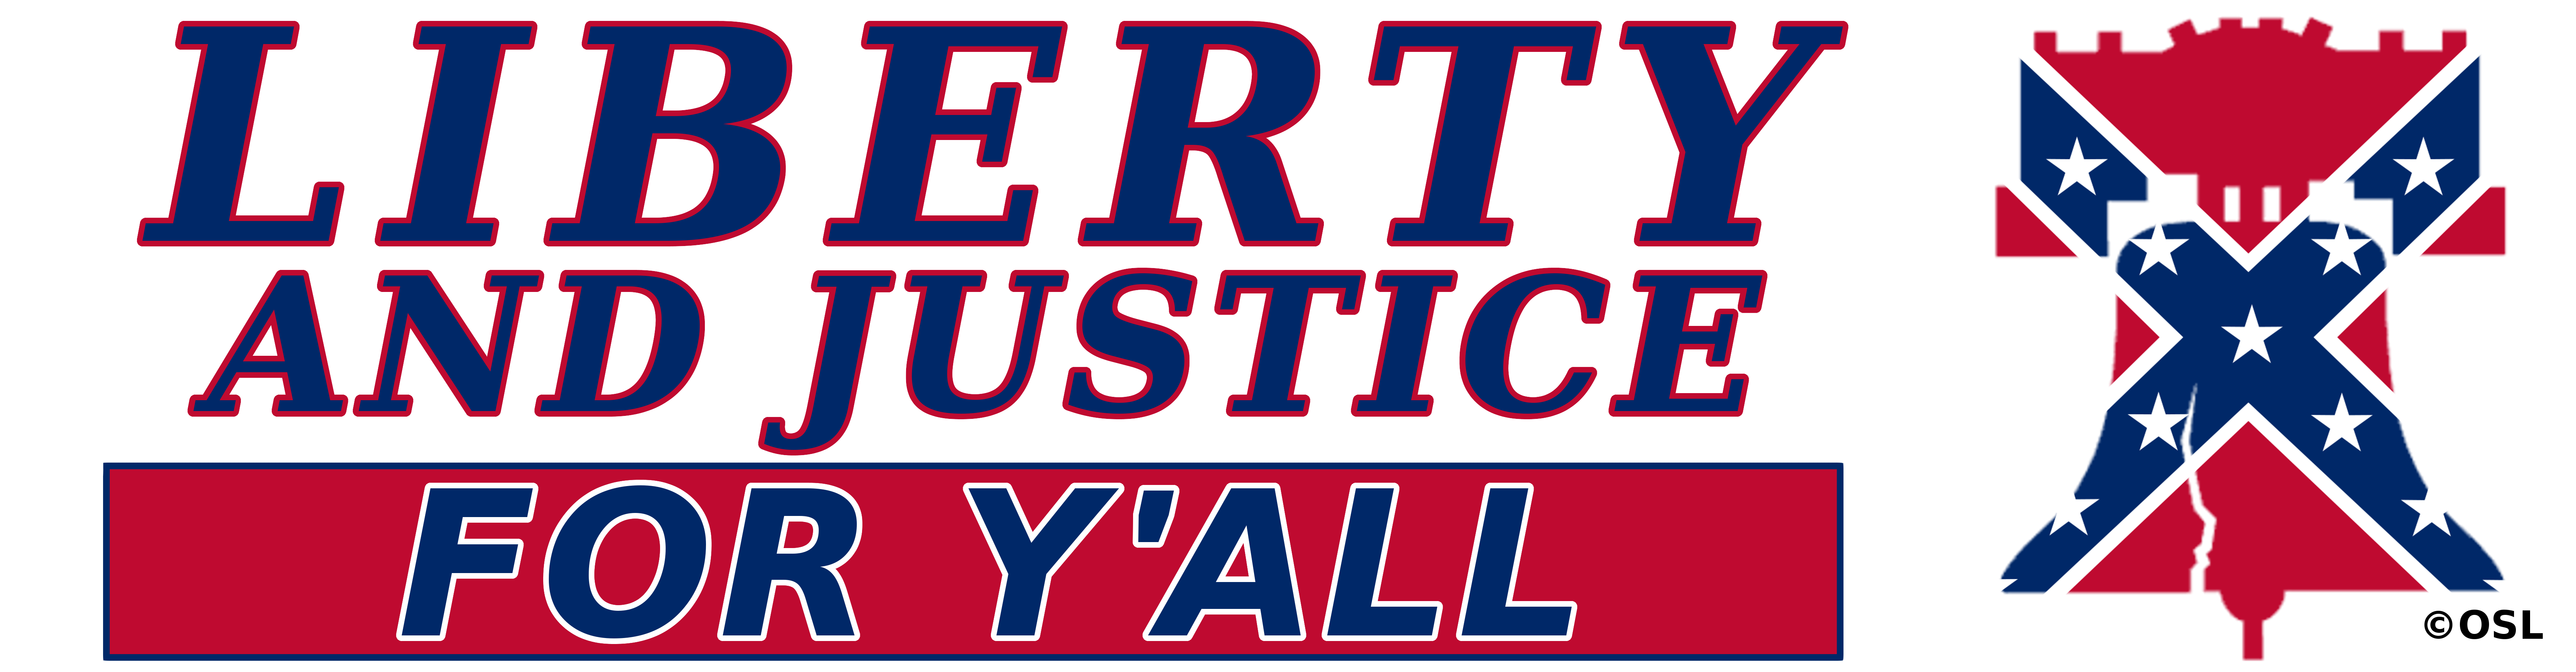 Liberty and justice for all seal